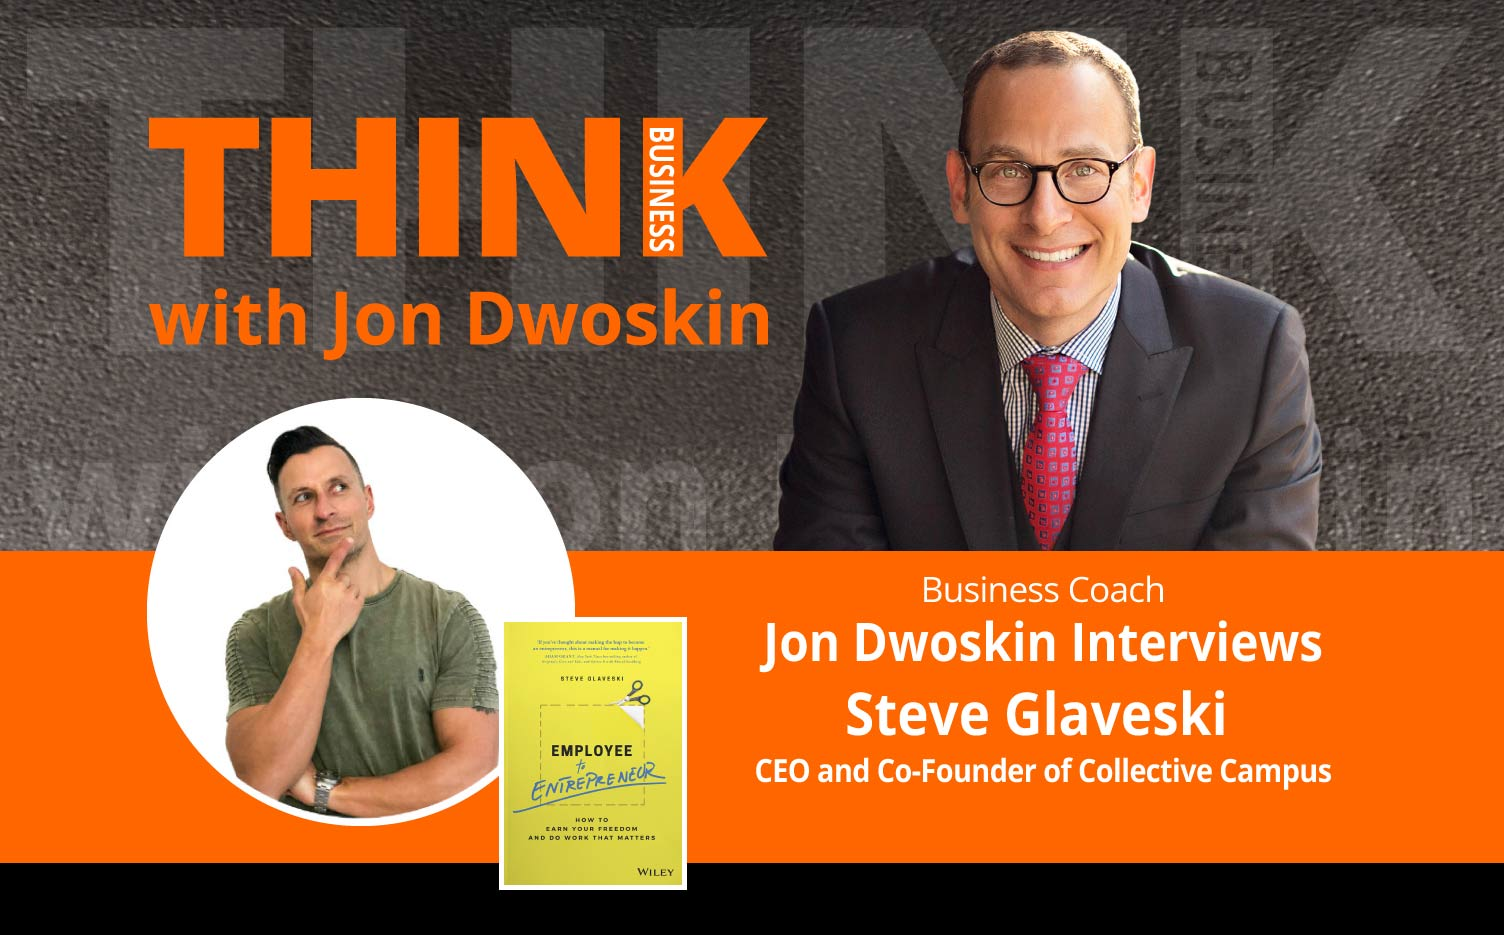 THINK Business Podcast: Jon Dwoskin Interviews Steve Glaveski, CEO and Co-Founder of Collective Campus